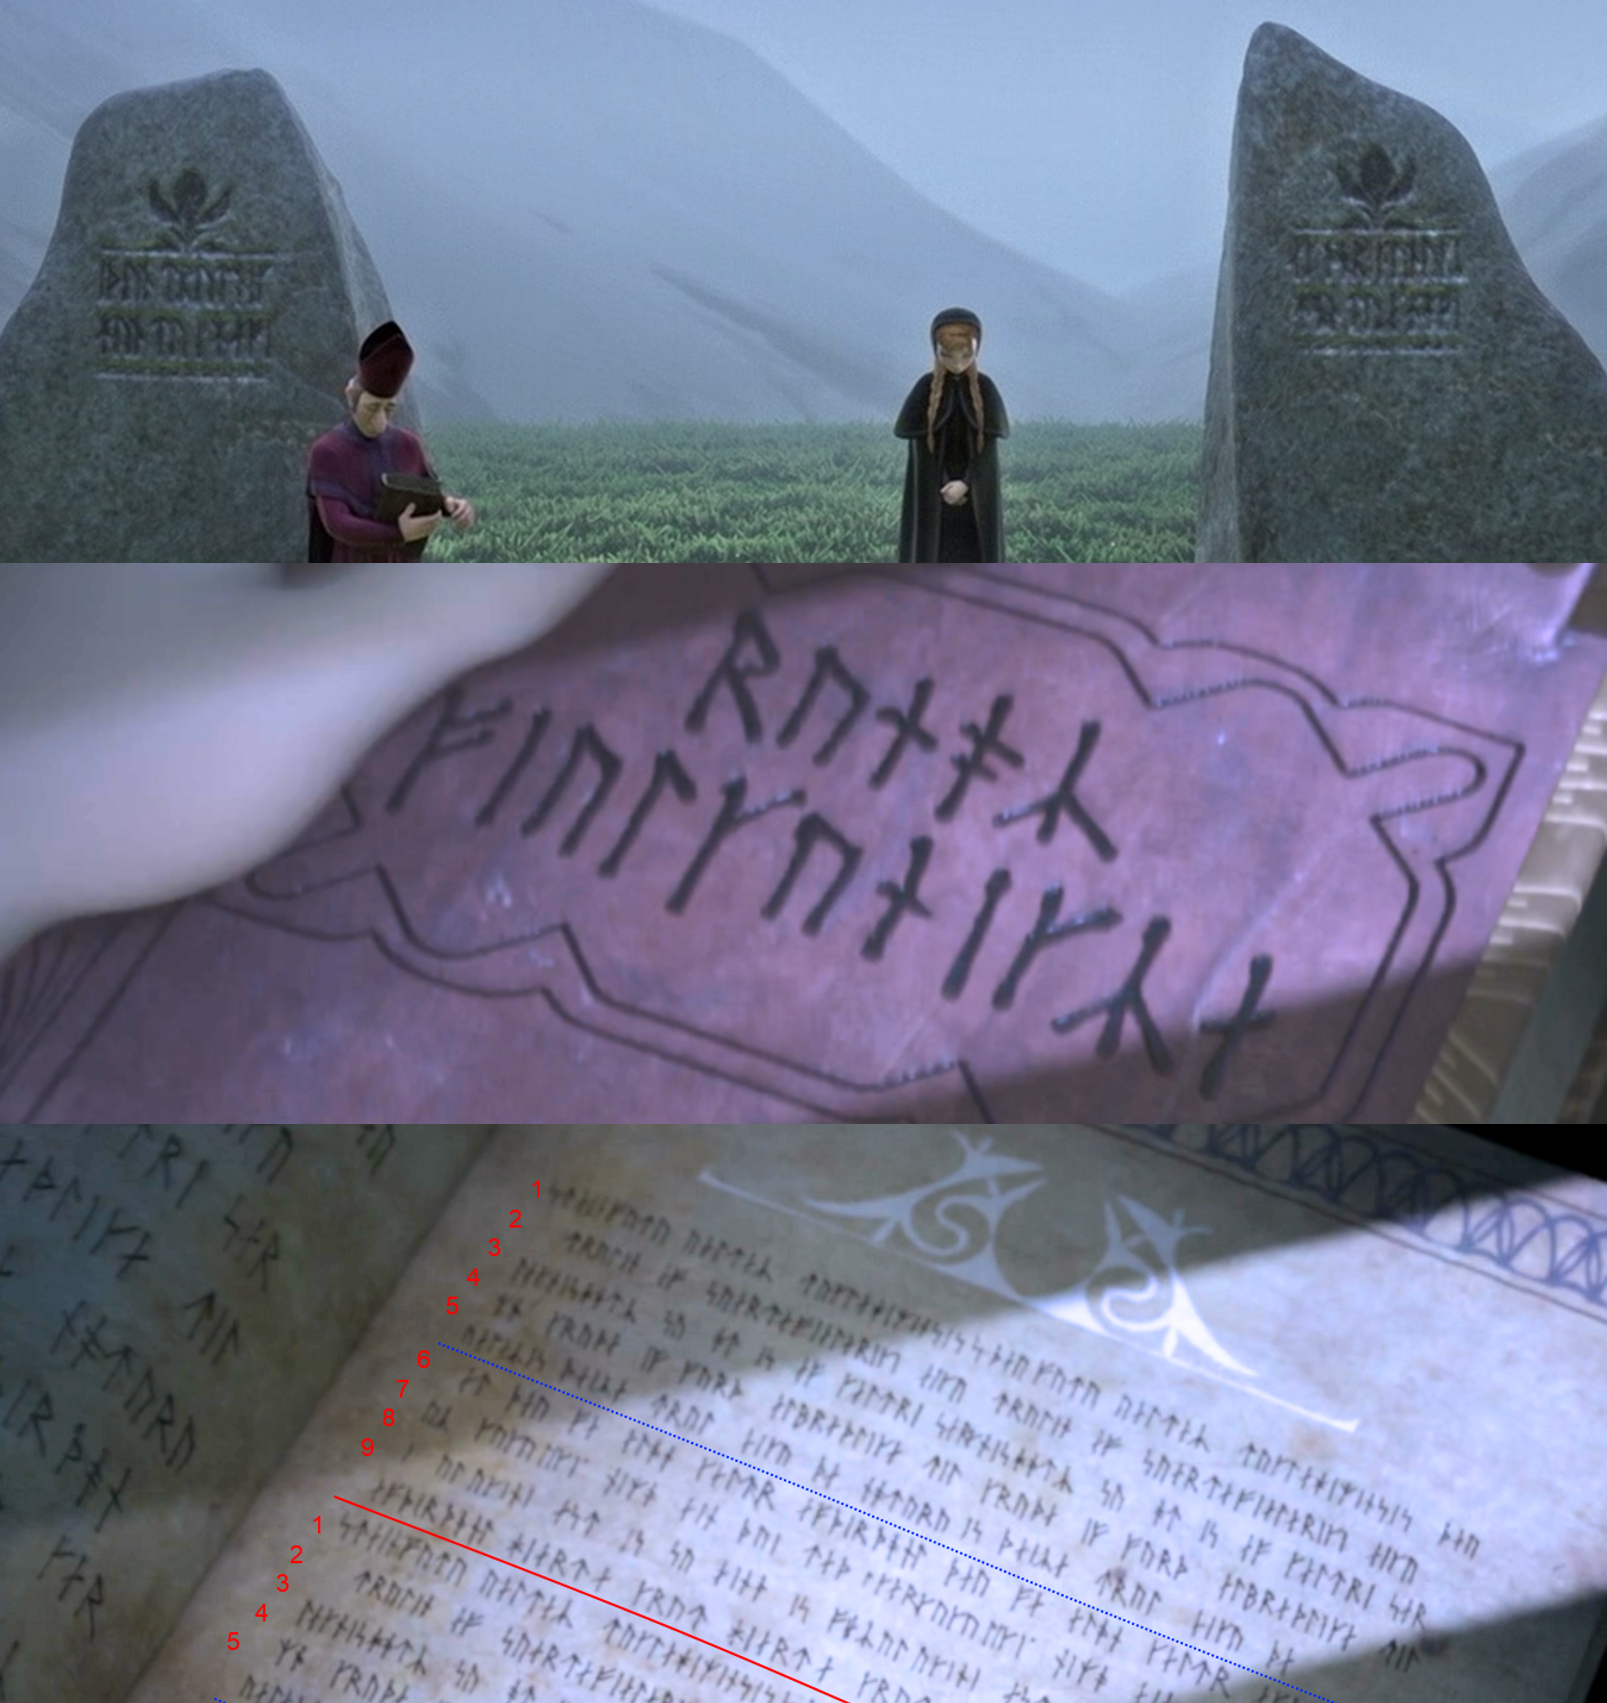 Norse runes depicted on tombstones and in a magic b